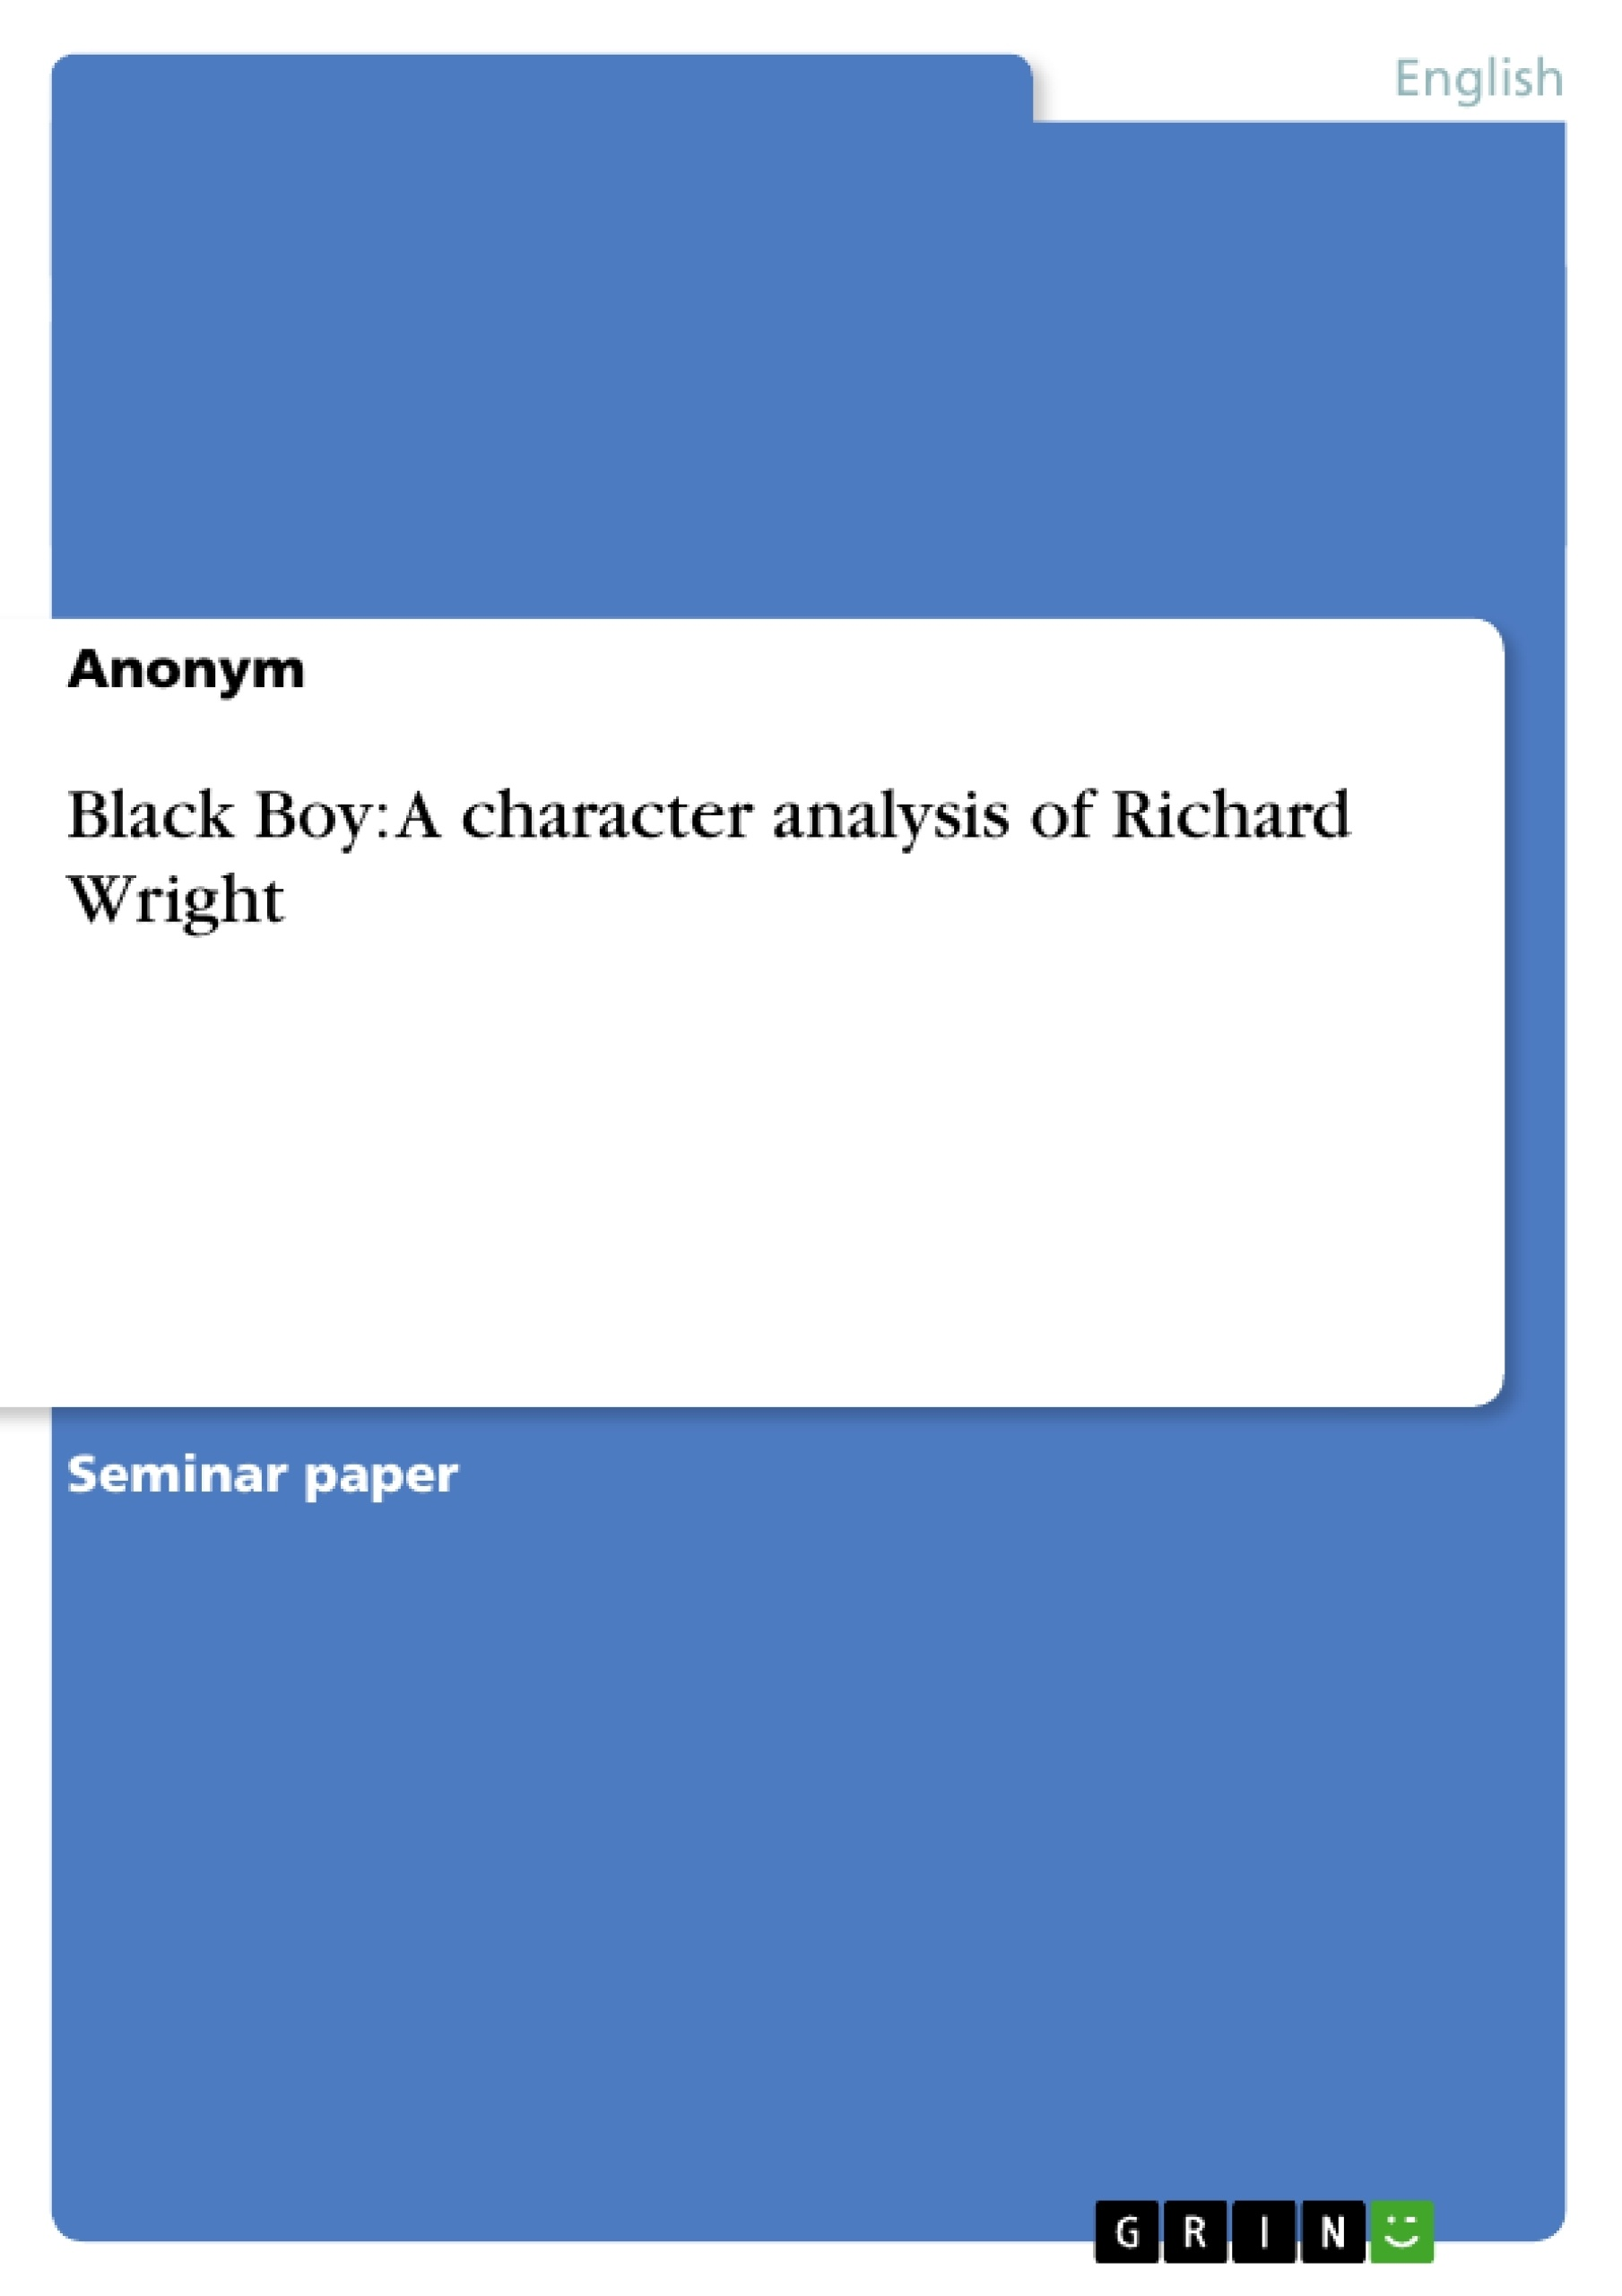 black boy a character analysis of richard wright publish your upload your own papers earn money and win an iphone 7